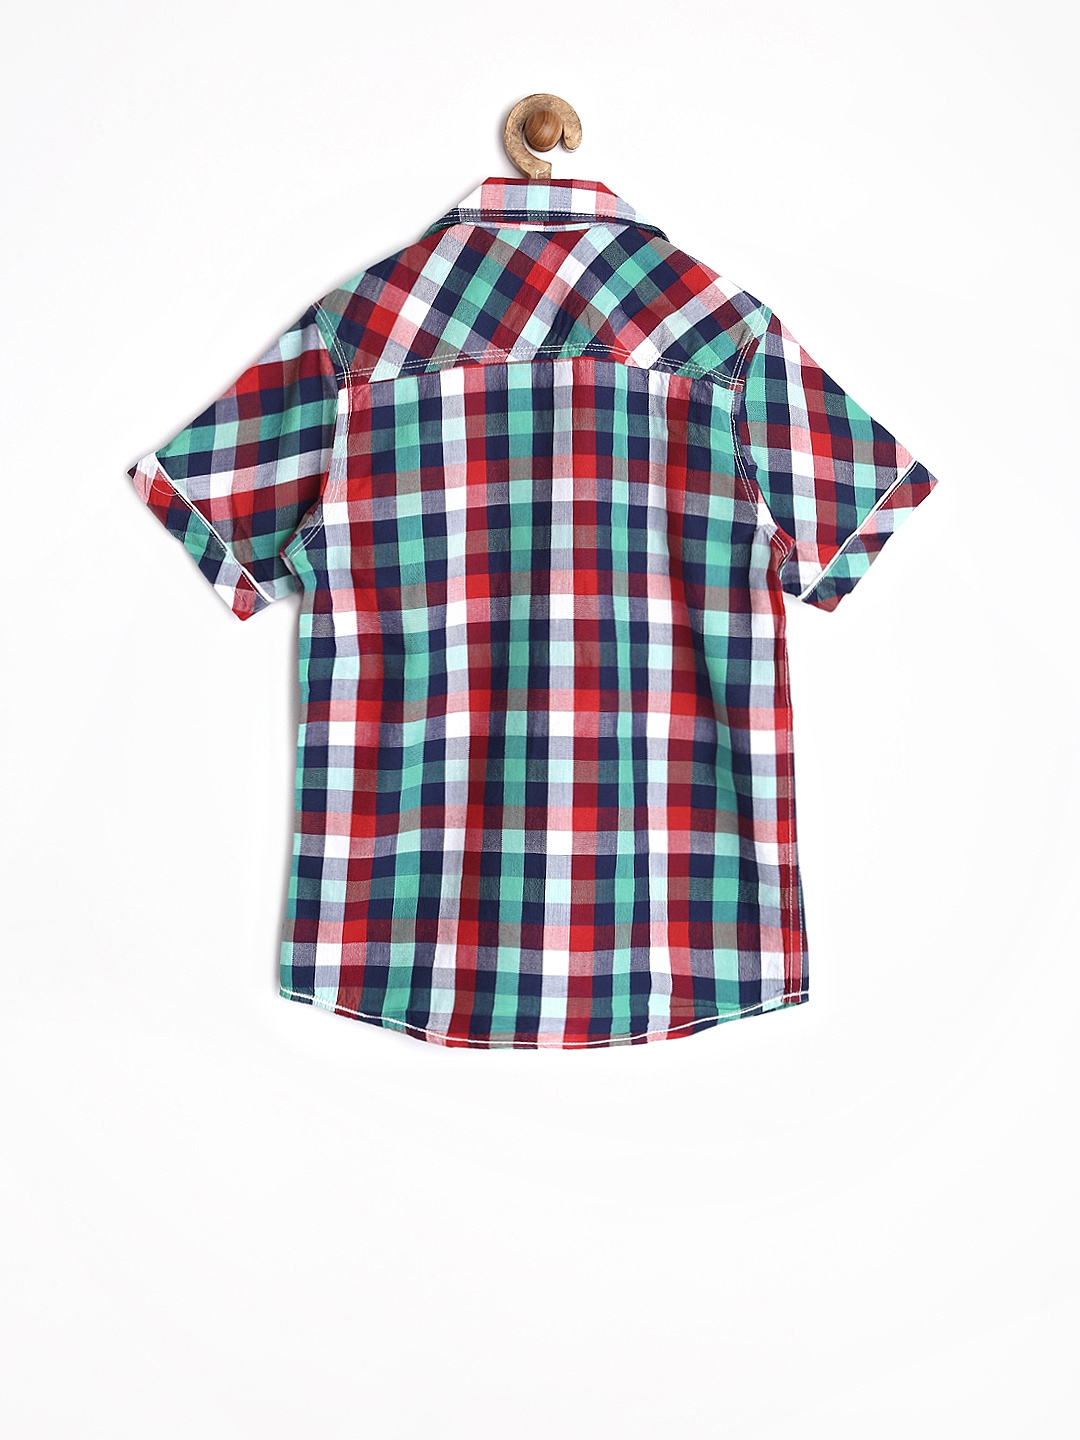 Myntra dreamszone boys red green checked shirt 664115 for Red and green checked shirt